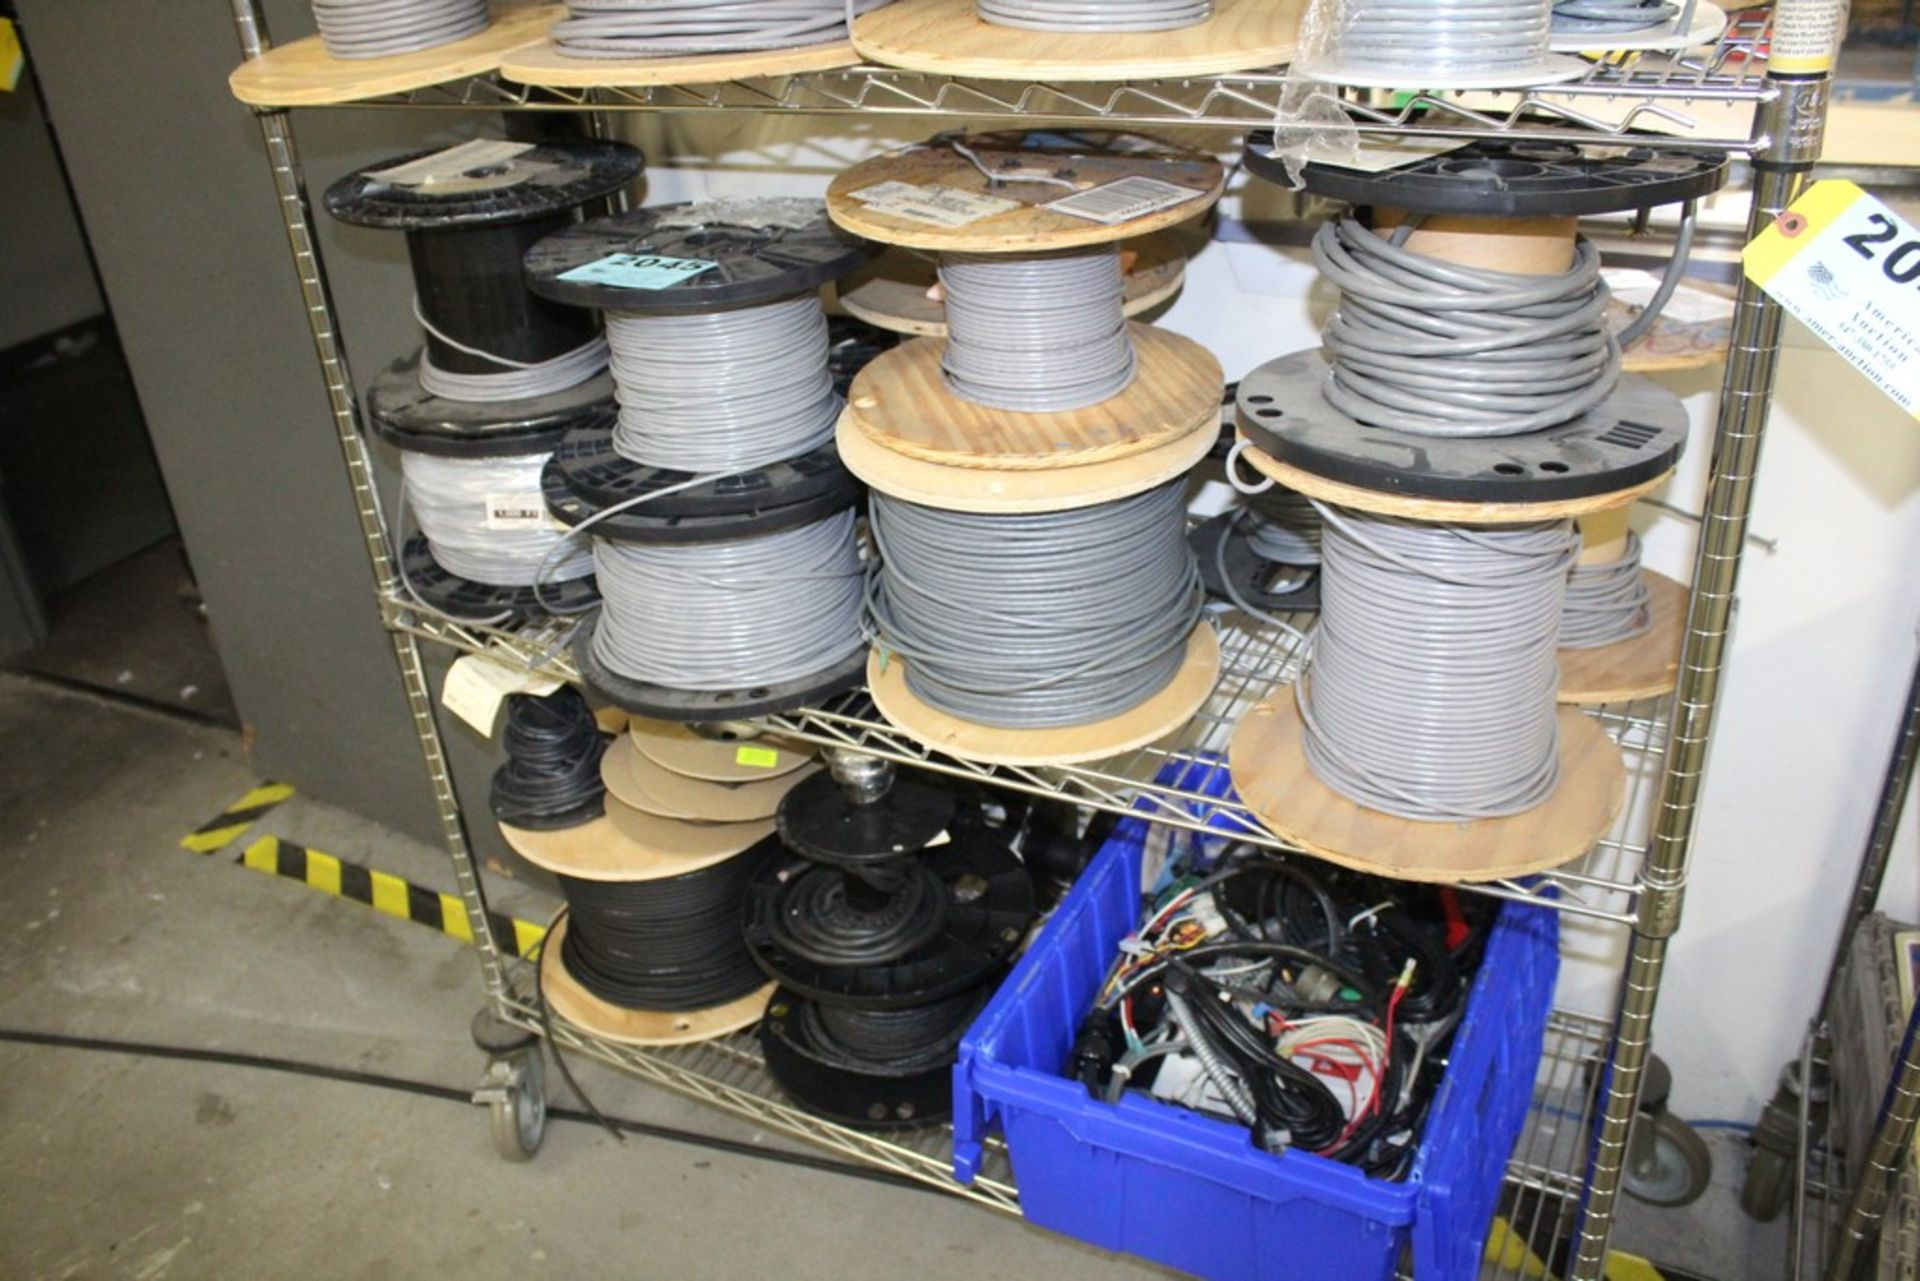 Lot 2045 - WIRE AND COMPONENTS ON TWO SHELVES, NO SHELVING